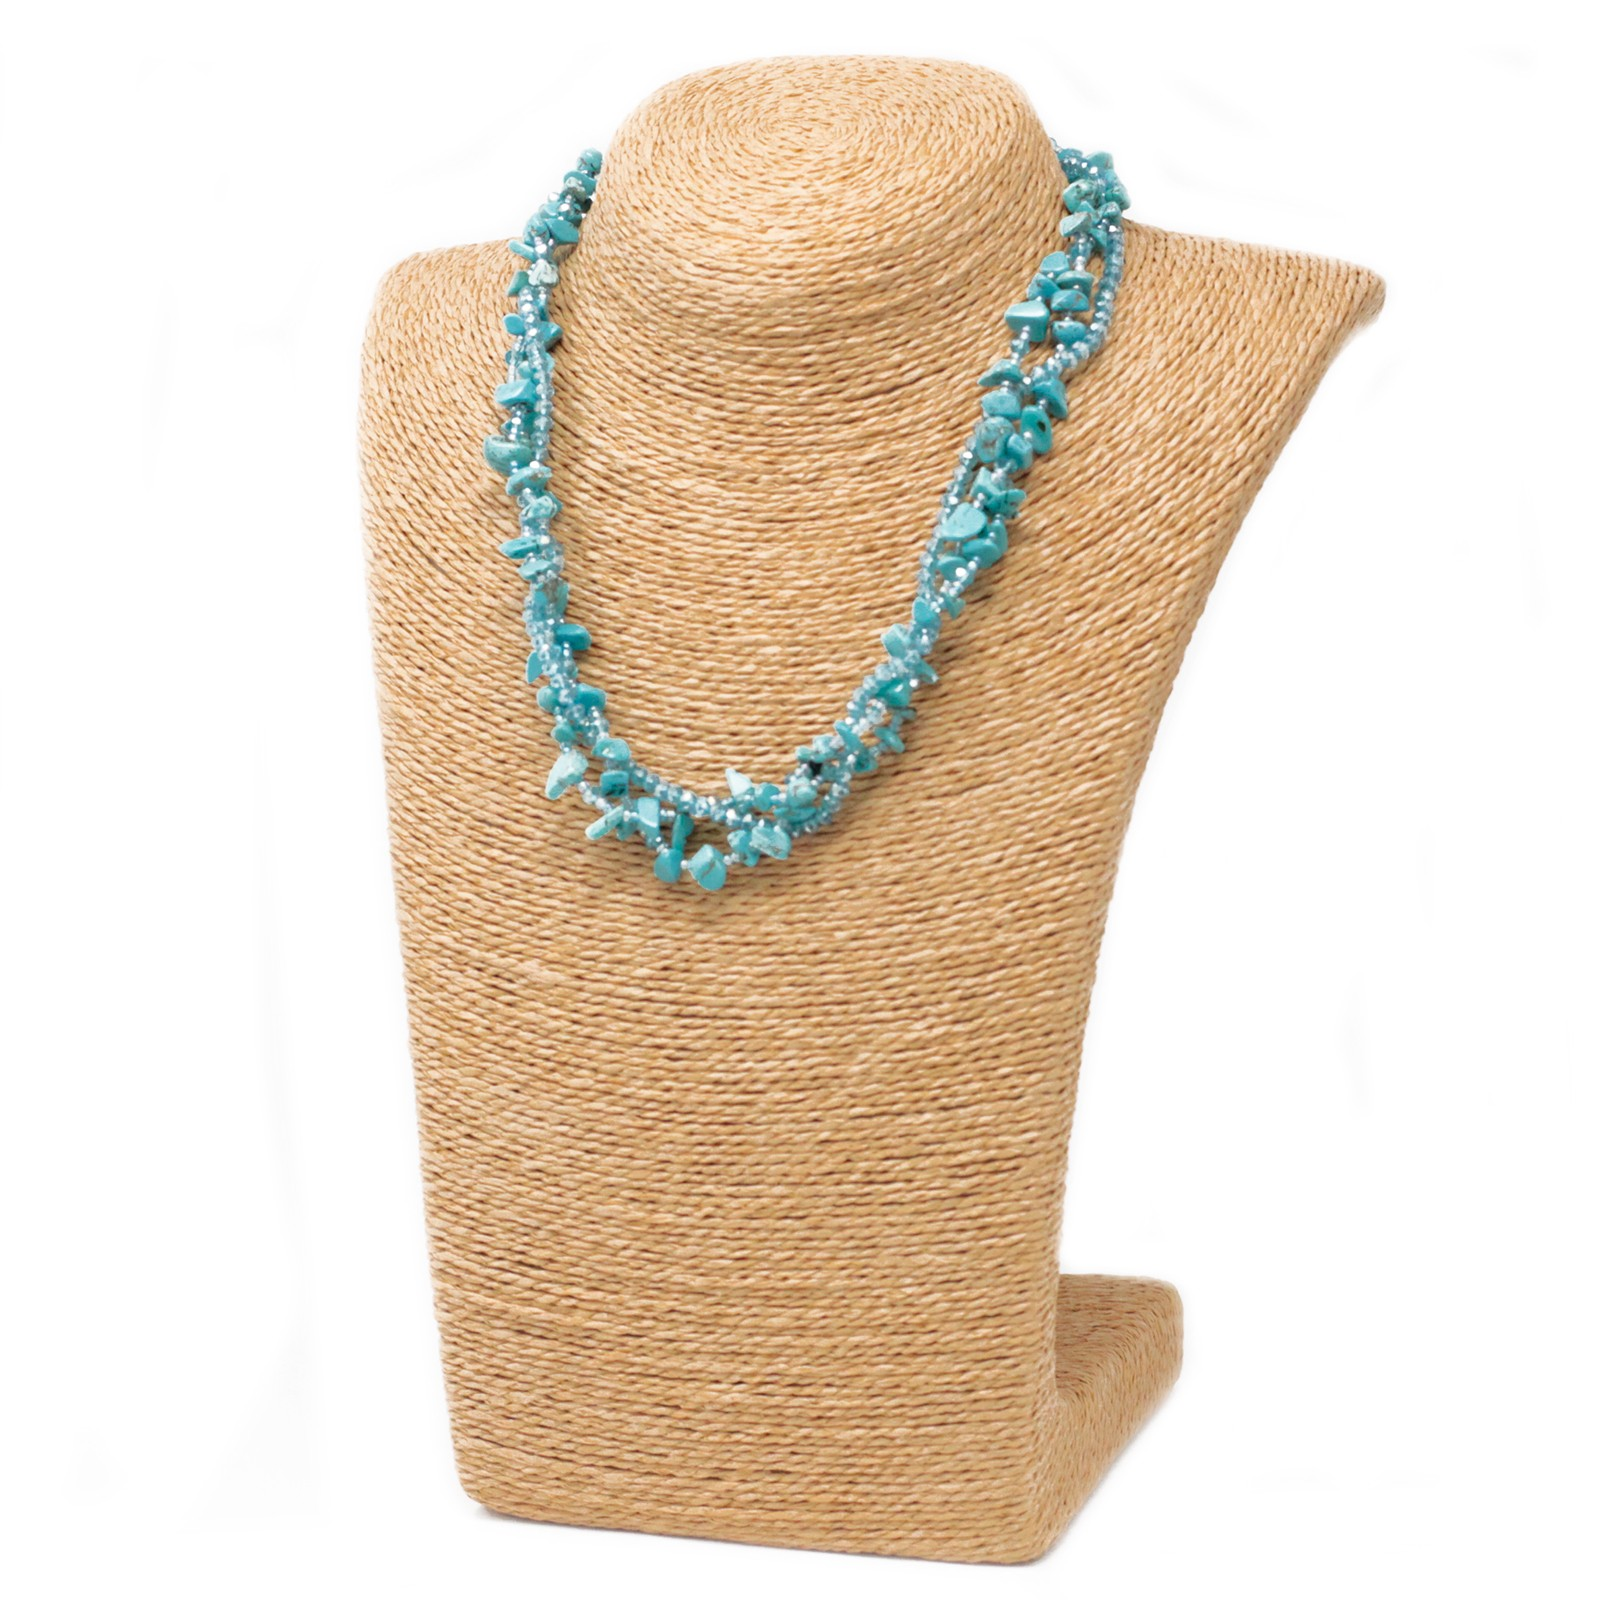 Chipstone & Bead Necklace -Turquoise